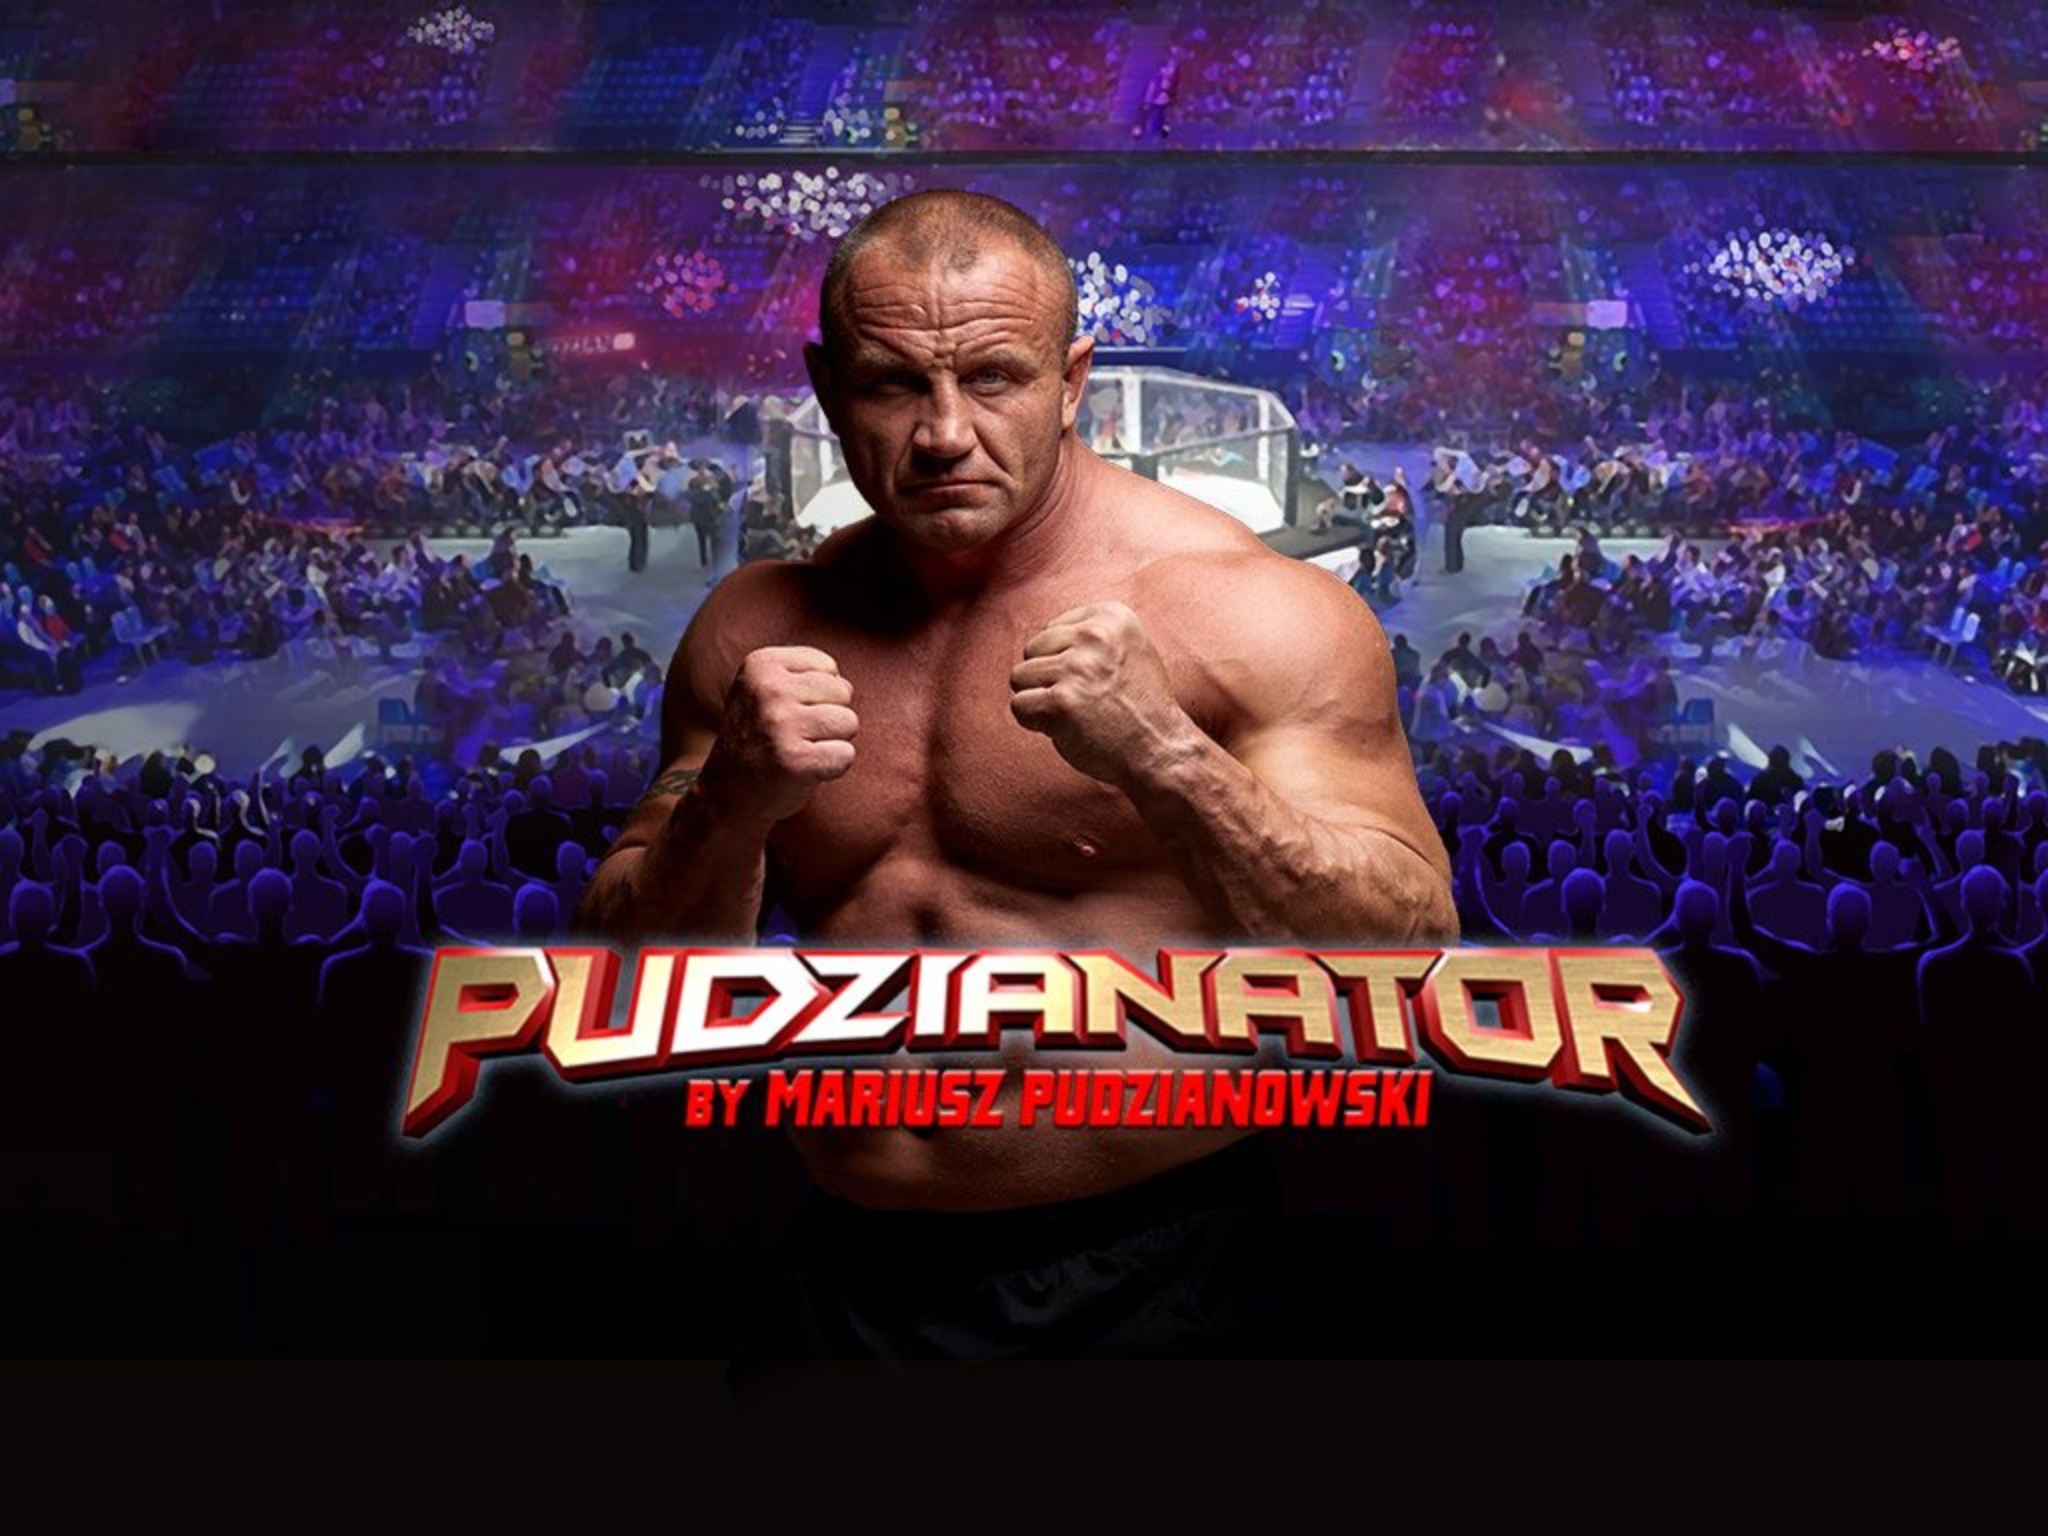 The Pudzianator Online Slot Demo Game by Promatic Games